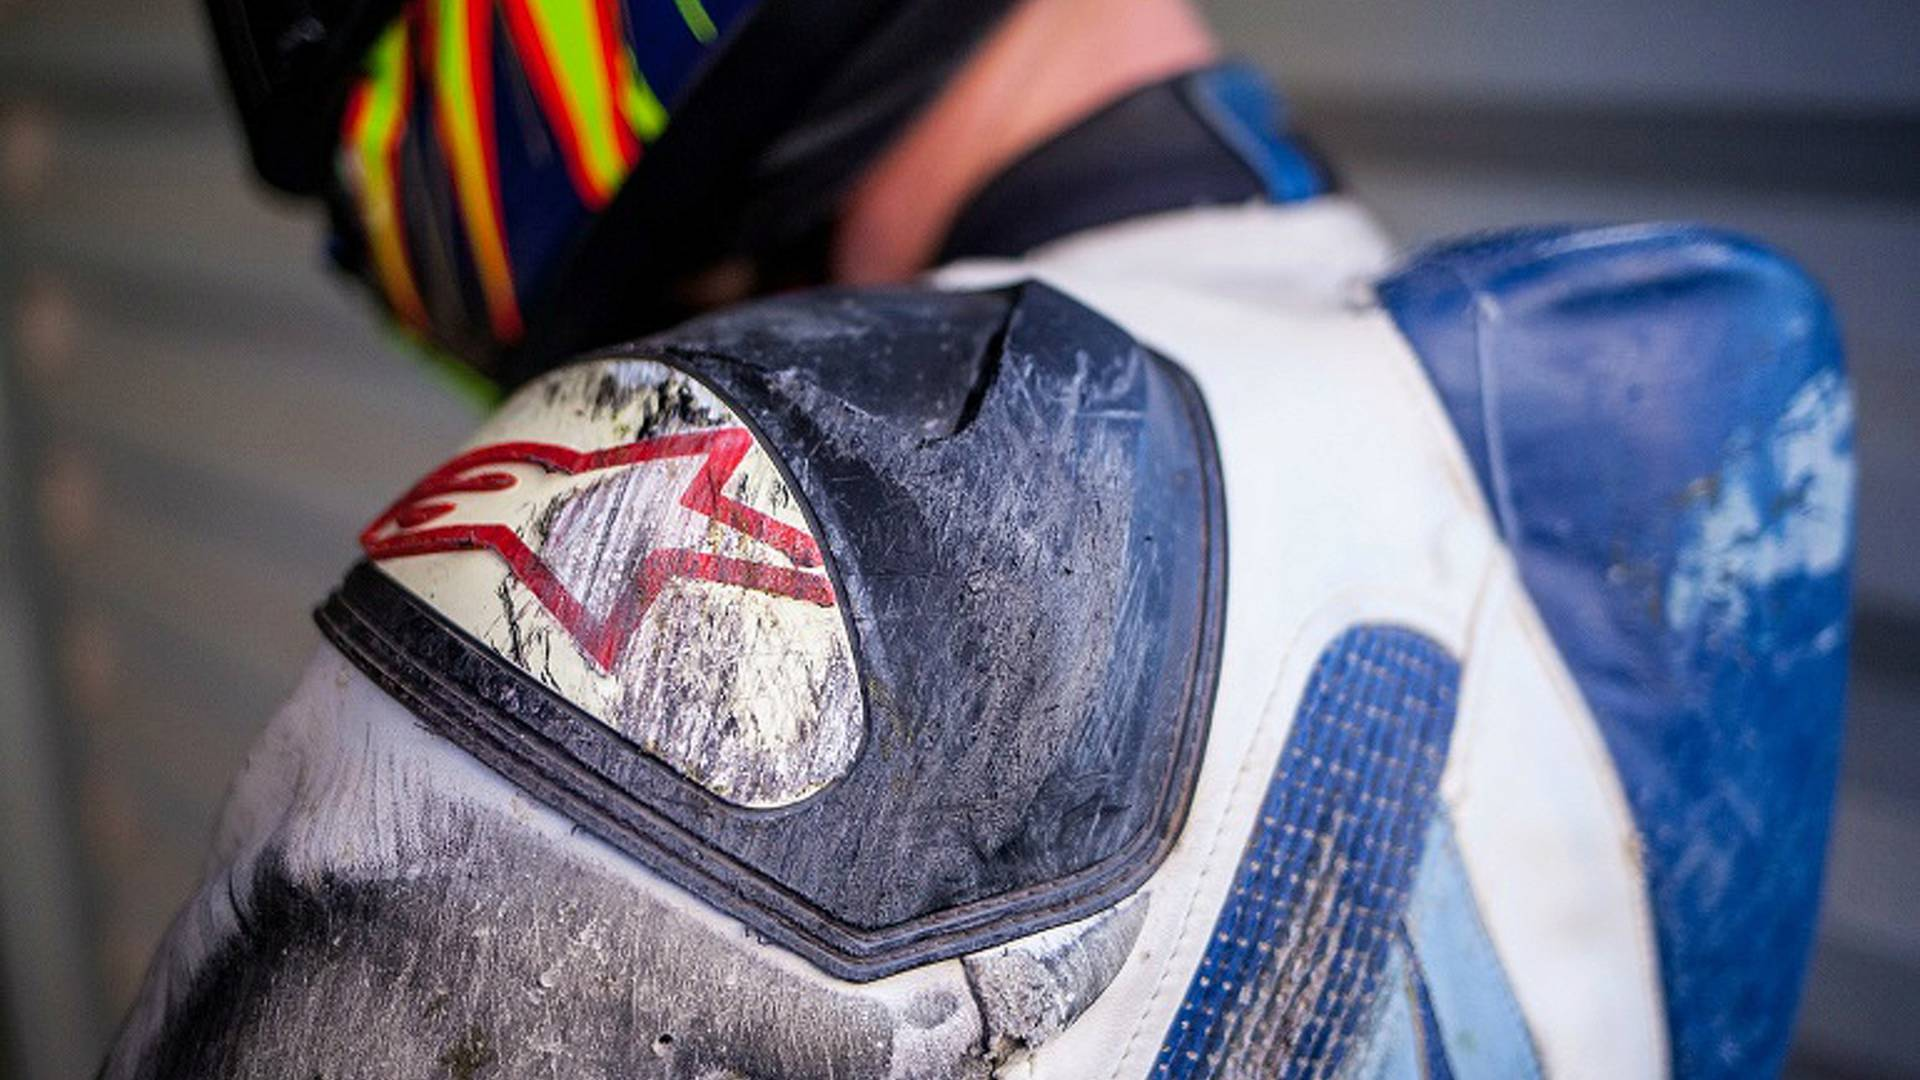 Ask RideApart: Is My Motorcycle Gear Covered By My Insurance?